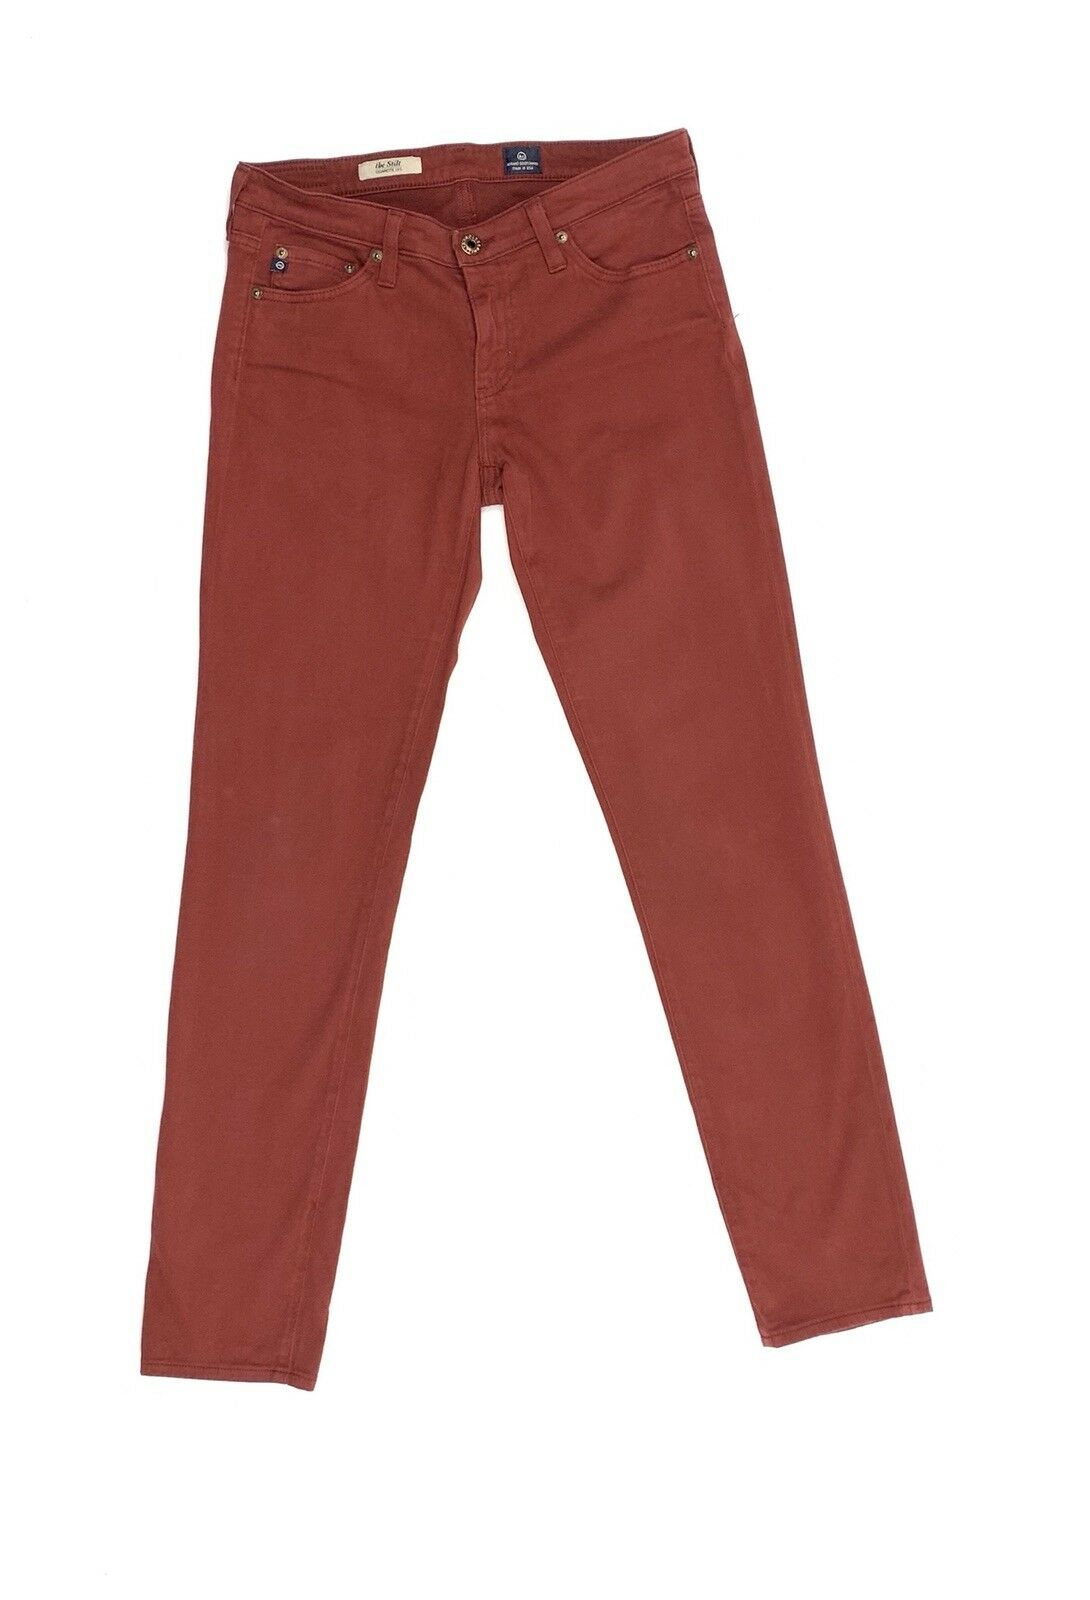 AG Adriano goldschmeid The Stilt Jeans 28R, Rich Rust Red, Made in USA